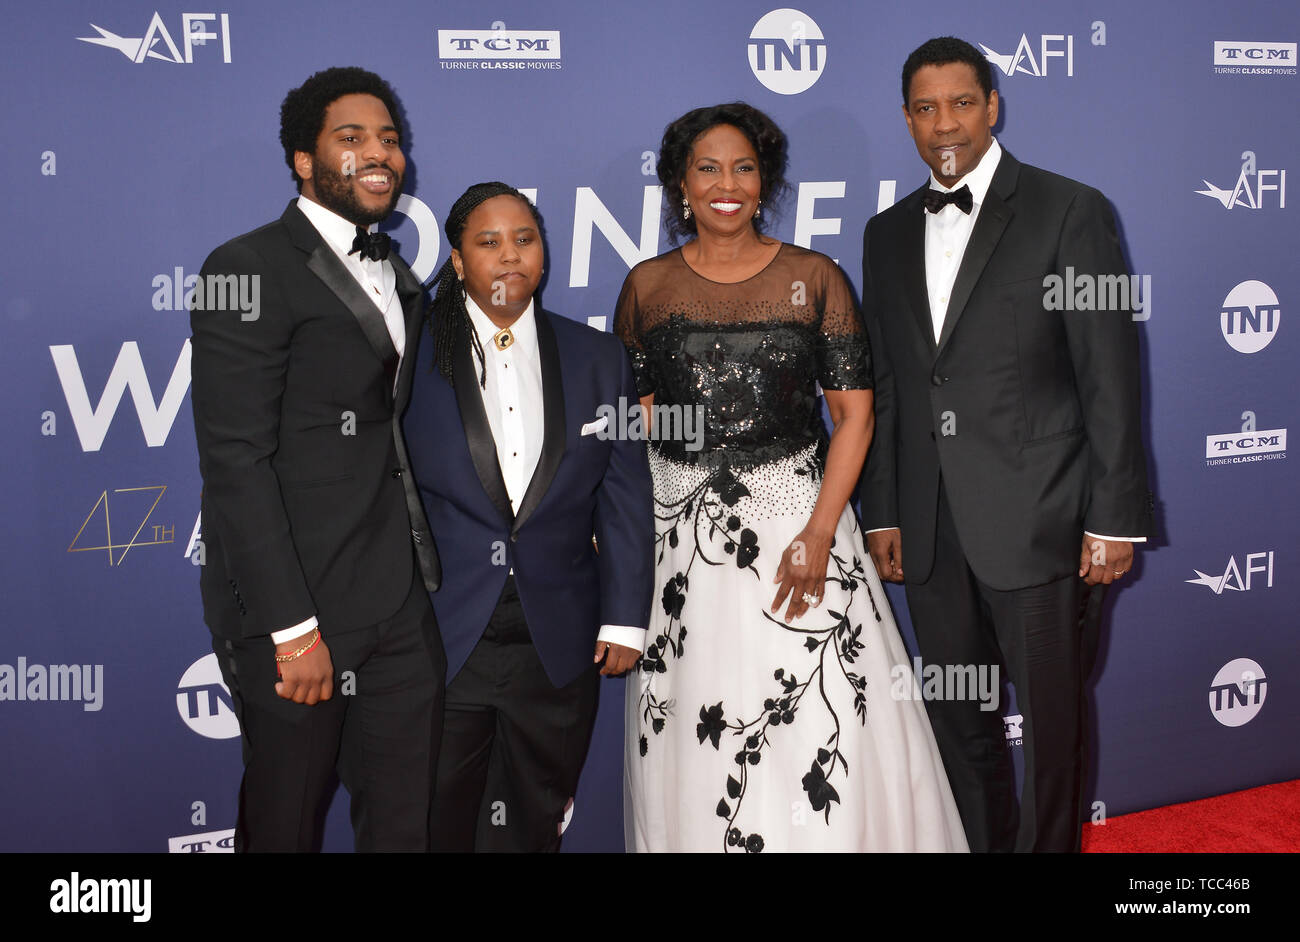 Los Angeles, USA. 06th June, 2019. Malcolm Washington, Katia Washington, Pauletta Washington, and Denzel Washington 083 attends the American Film Institute's 47th Life Achievement Award Gala Tribute To Denzel Washington at Dolby Theatre on June 6, 2019 in Hollywood, California Credit: Tsuni/USA/Alamy Live News Stock Photo